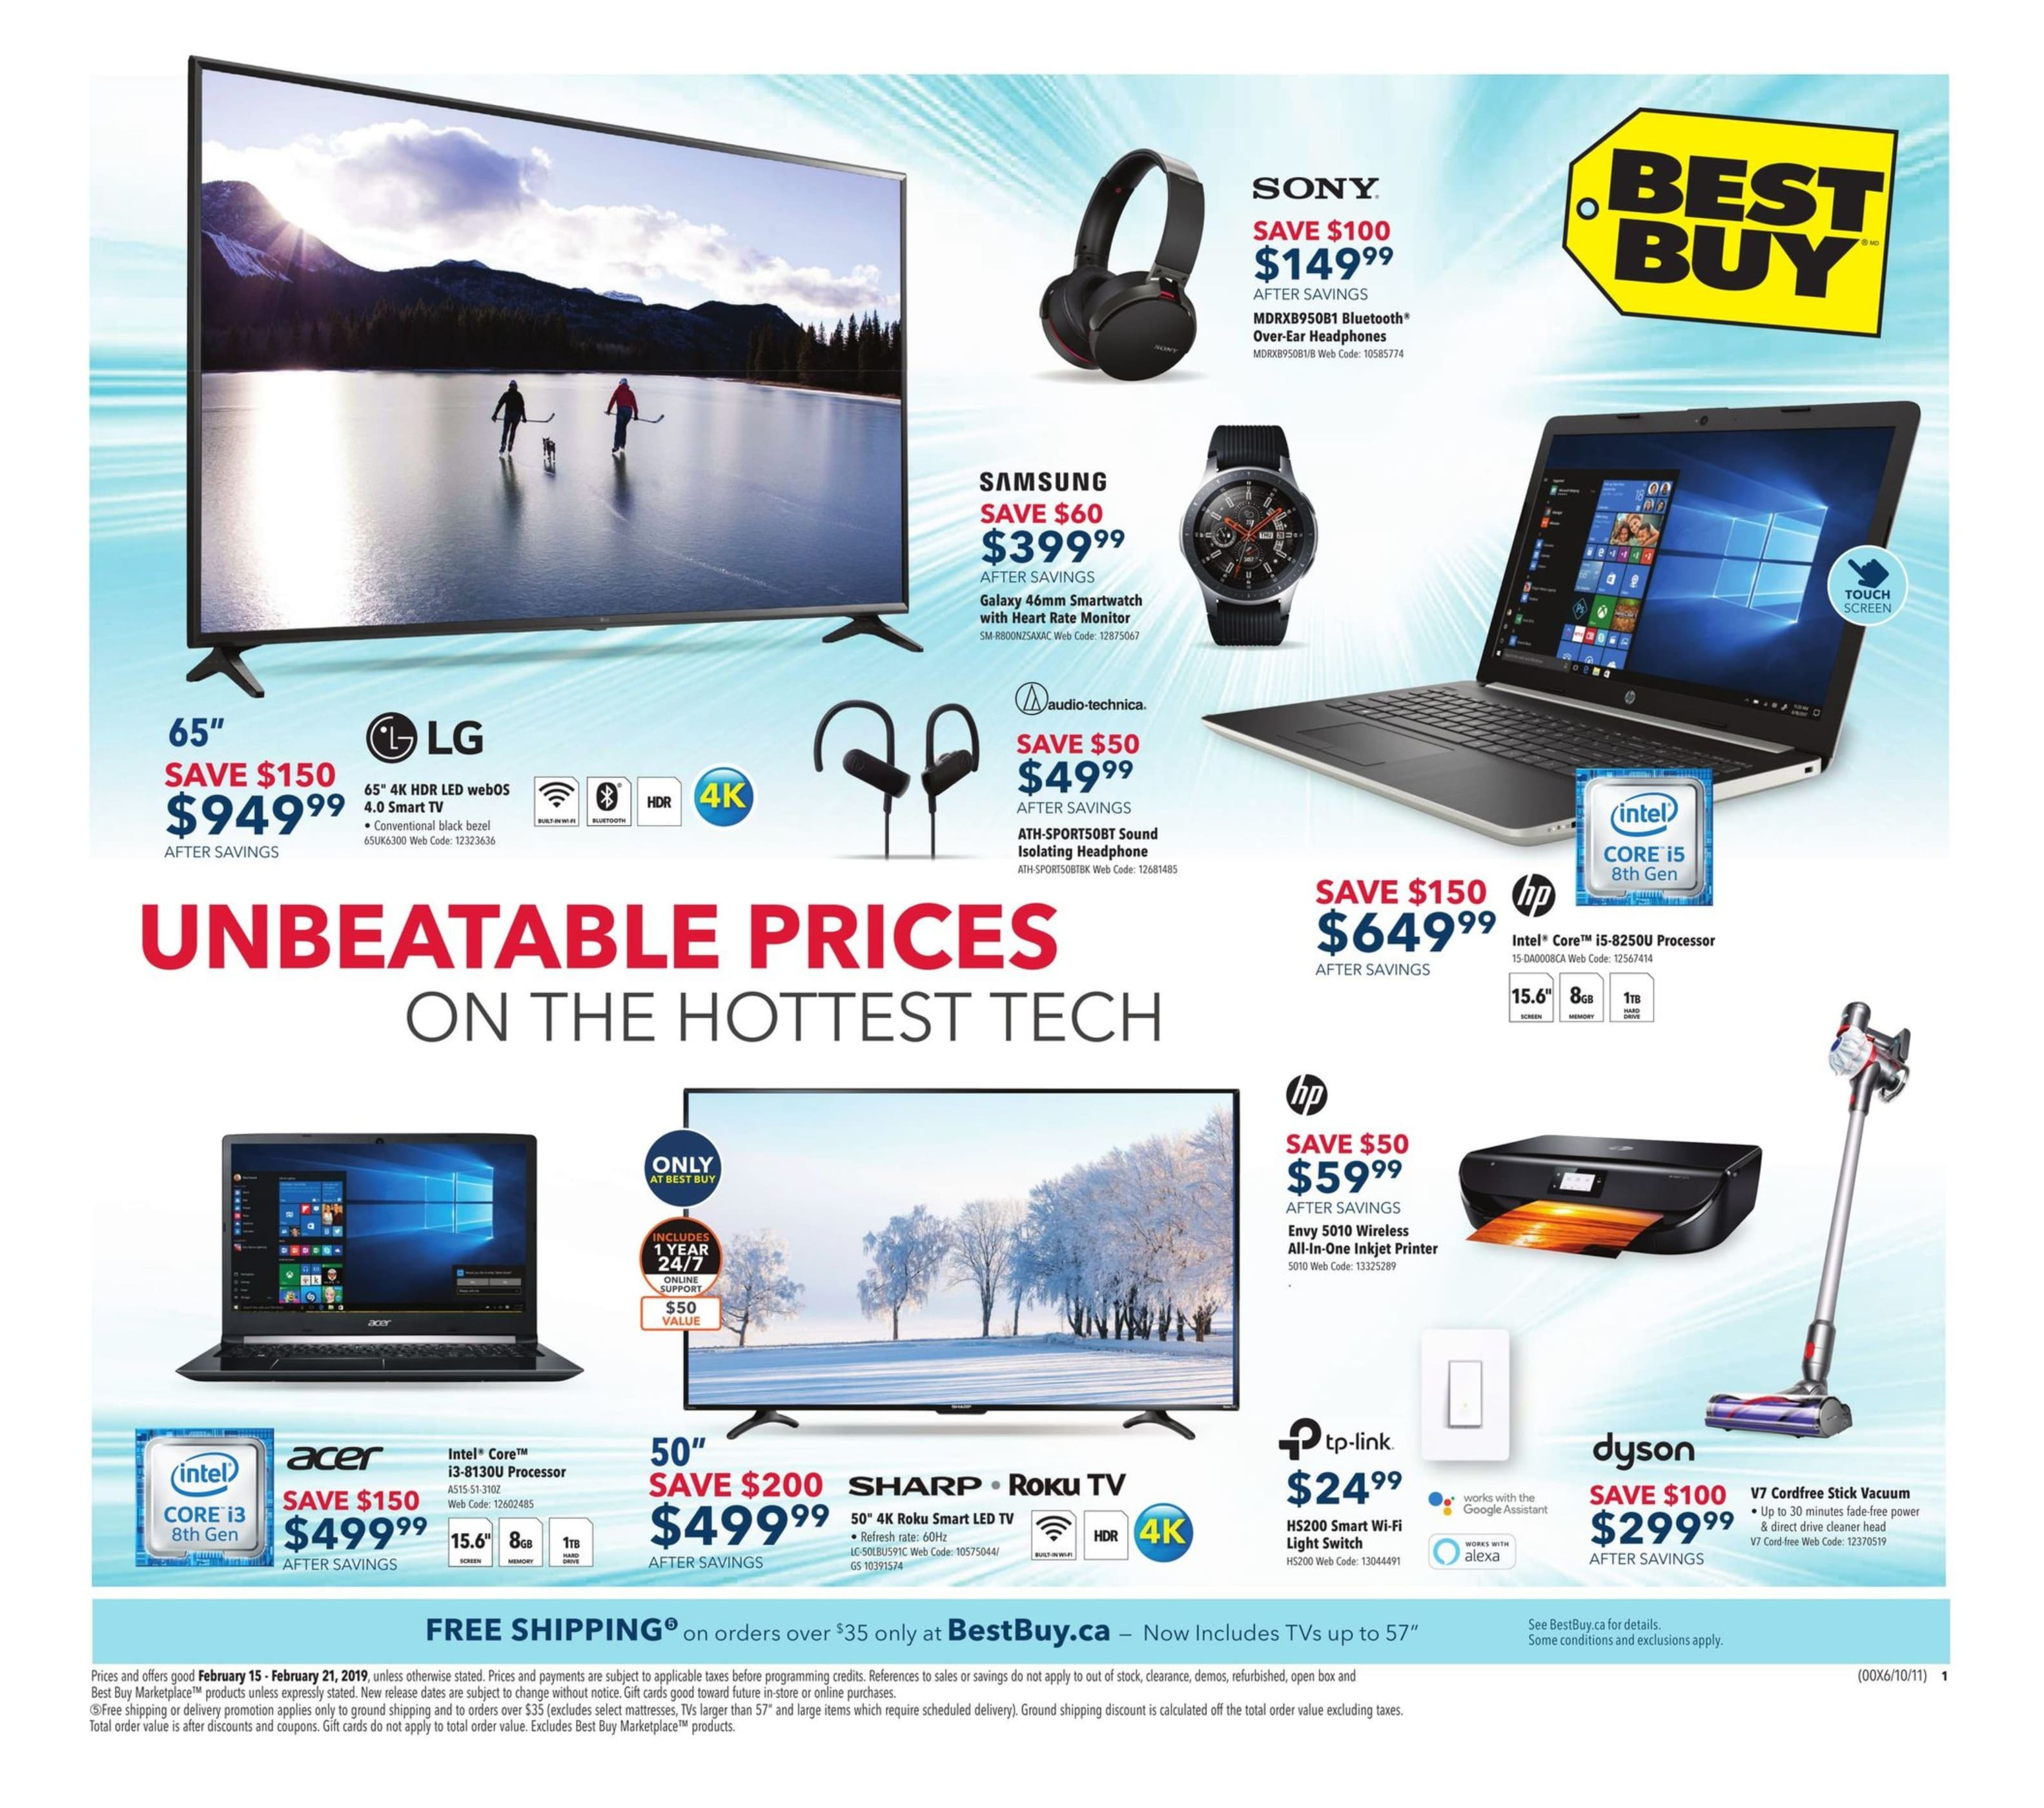 Best Buy Flyer Unbeatable Prices on the Hottest Tech 001